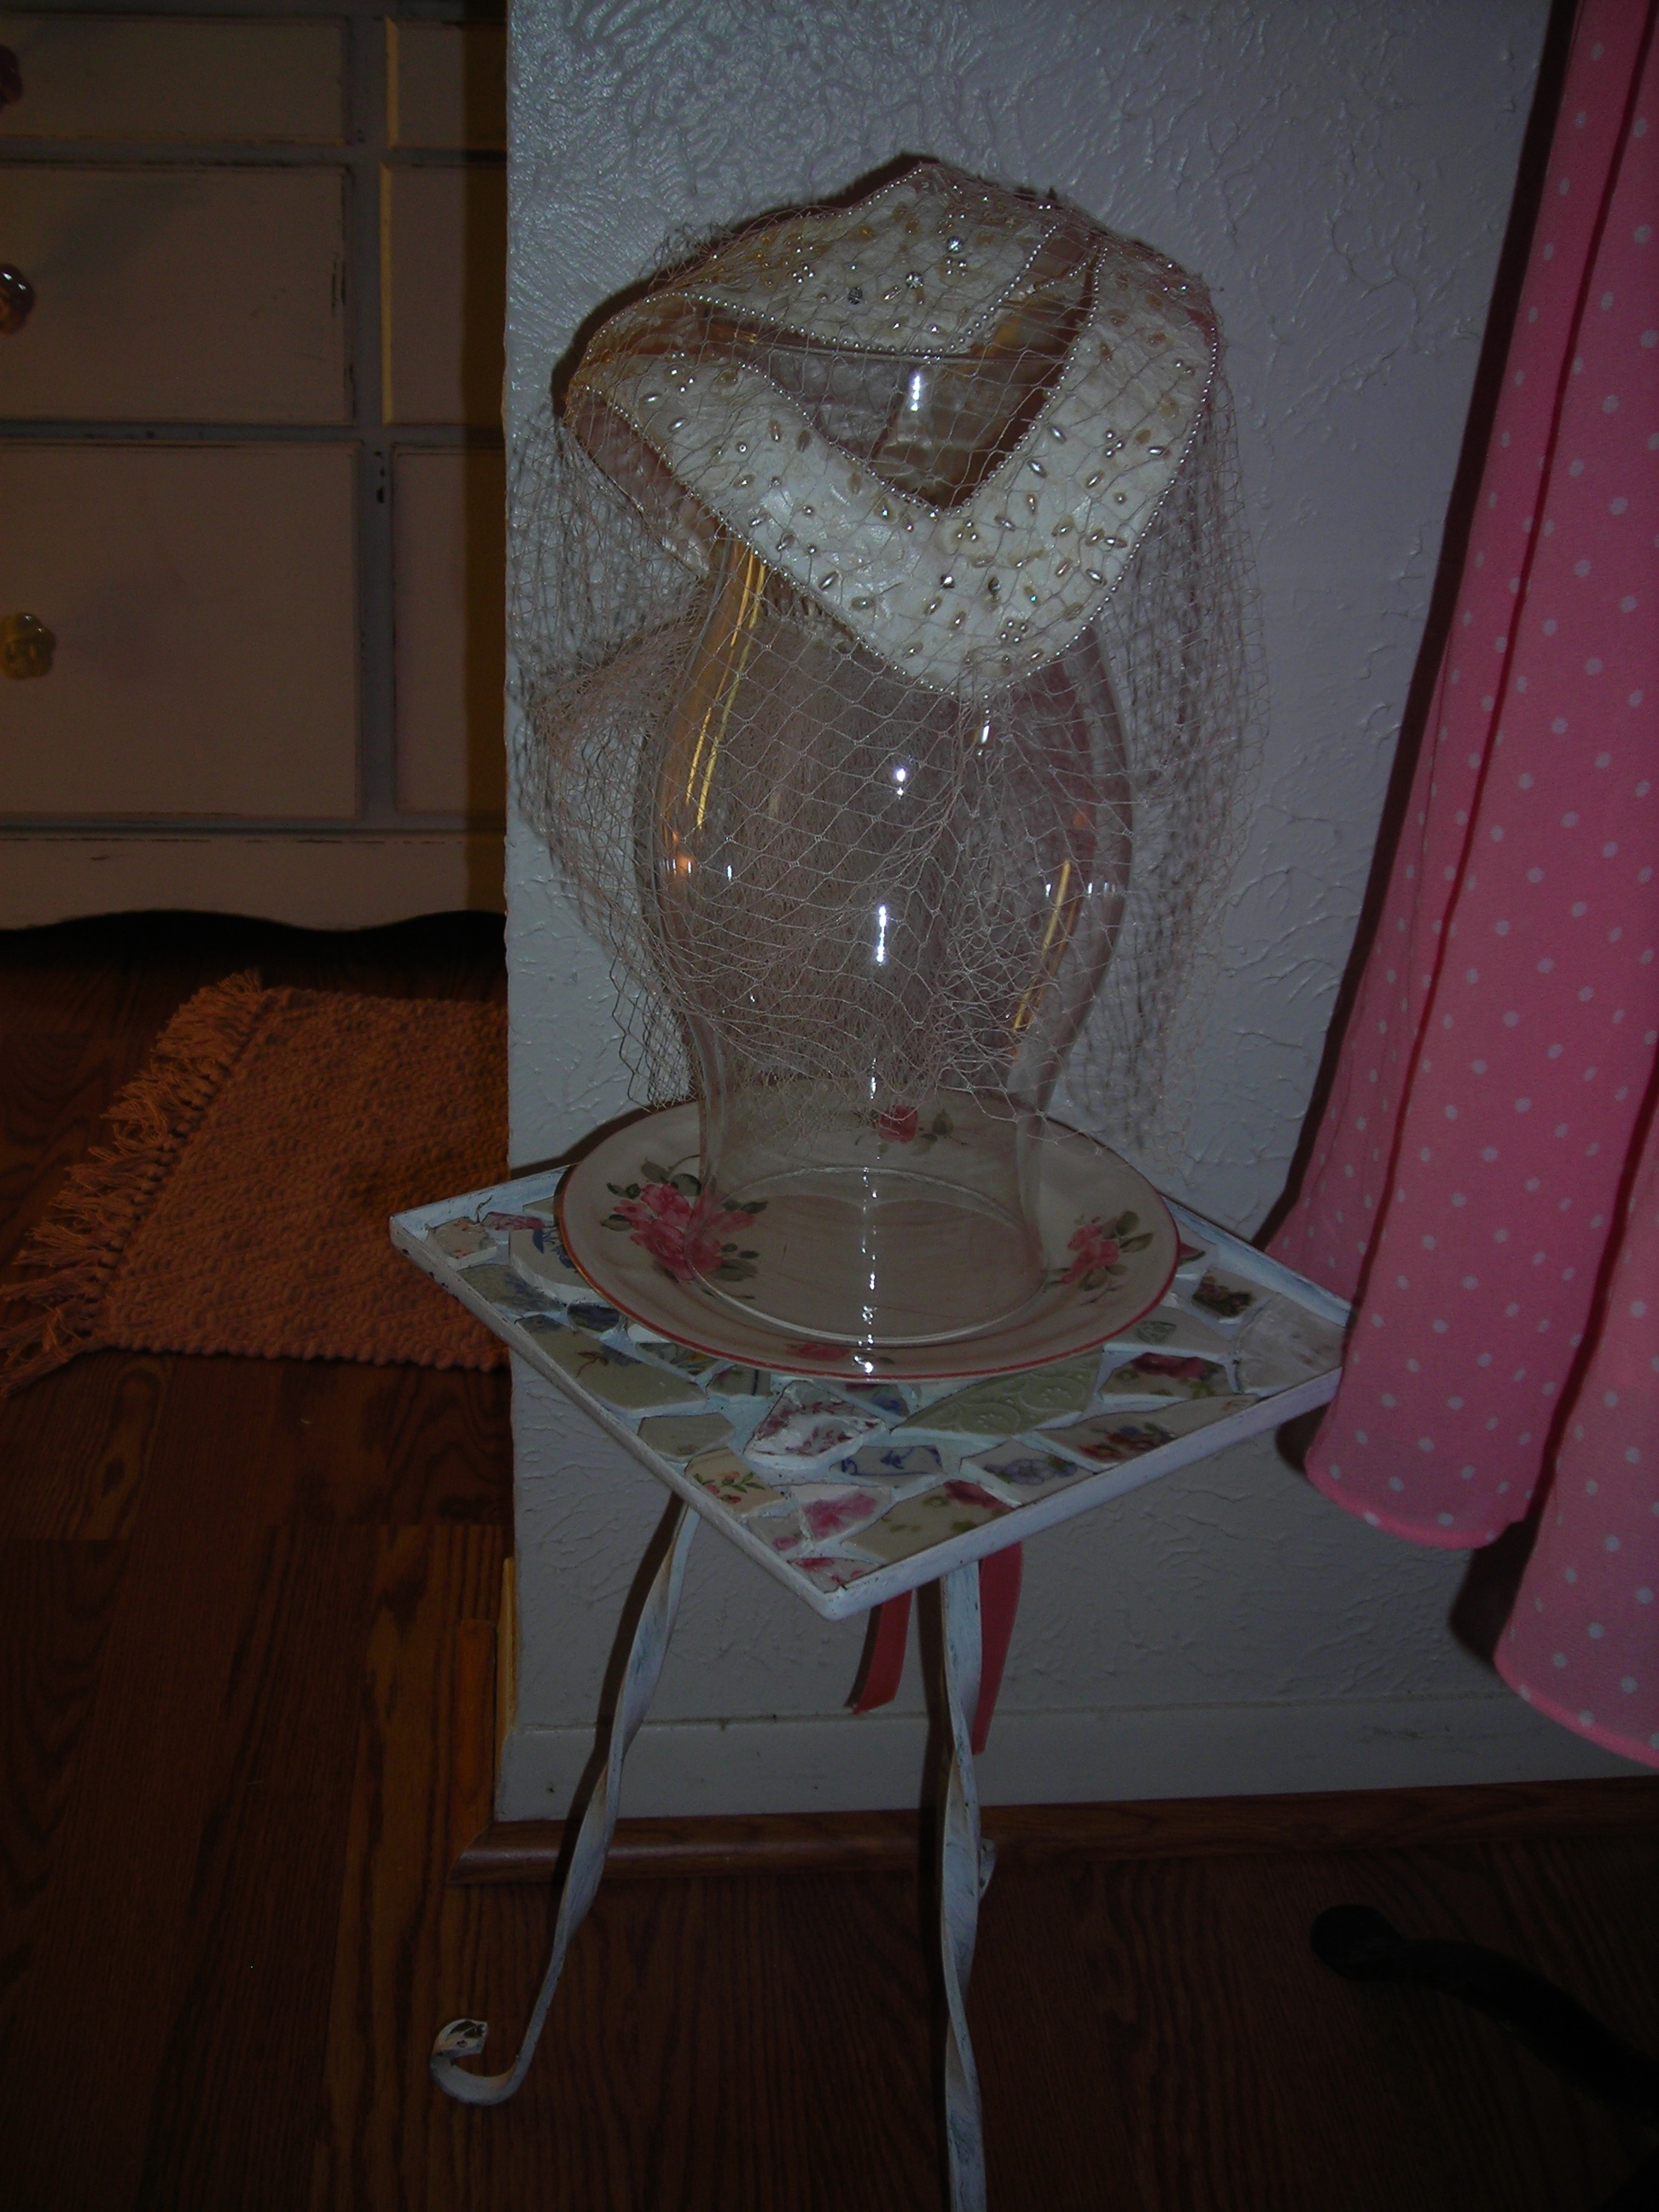 love this frilly hat ... planted her on a glass shade and rosy plate